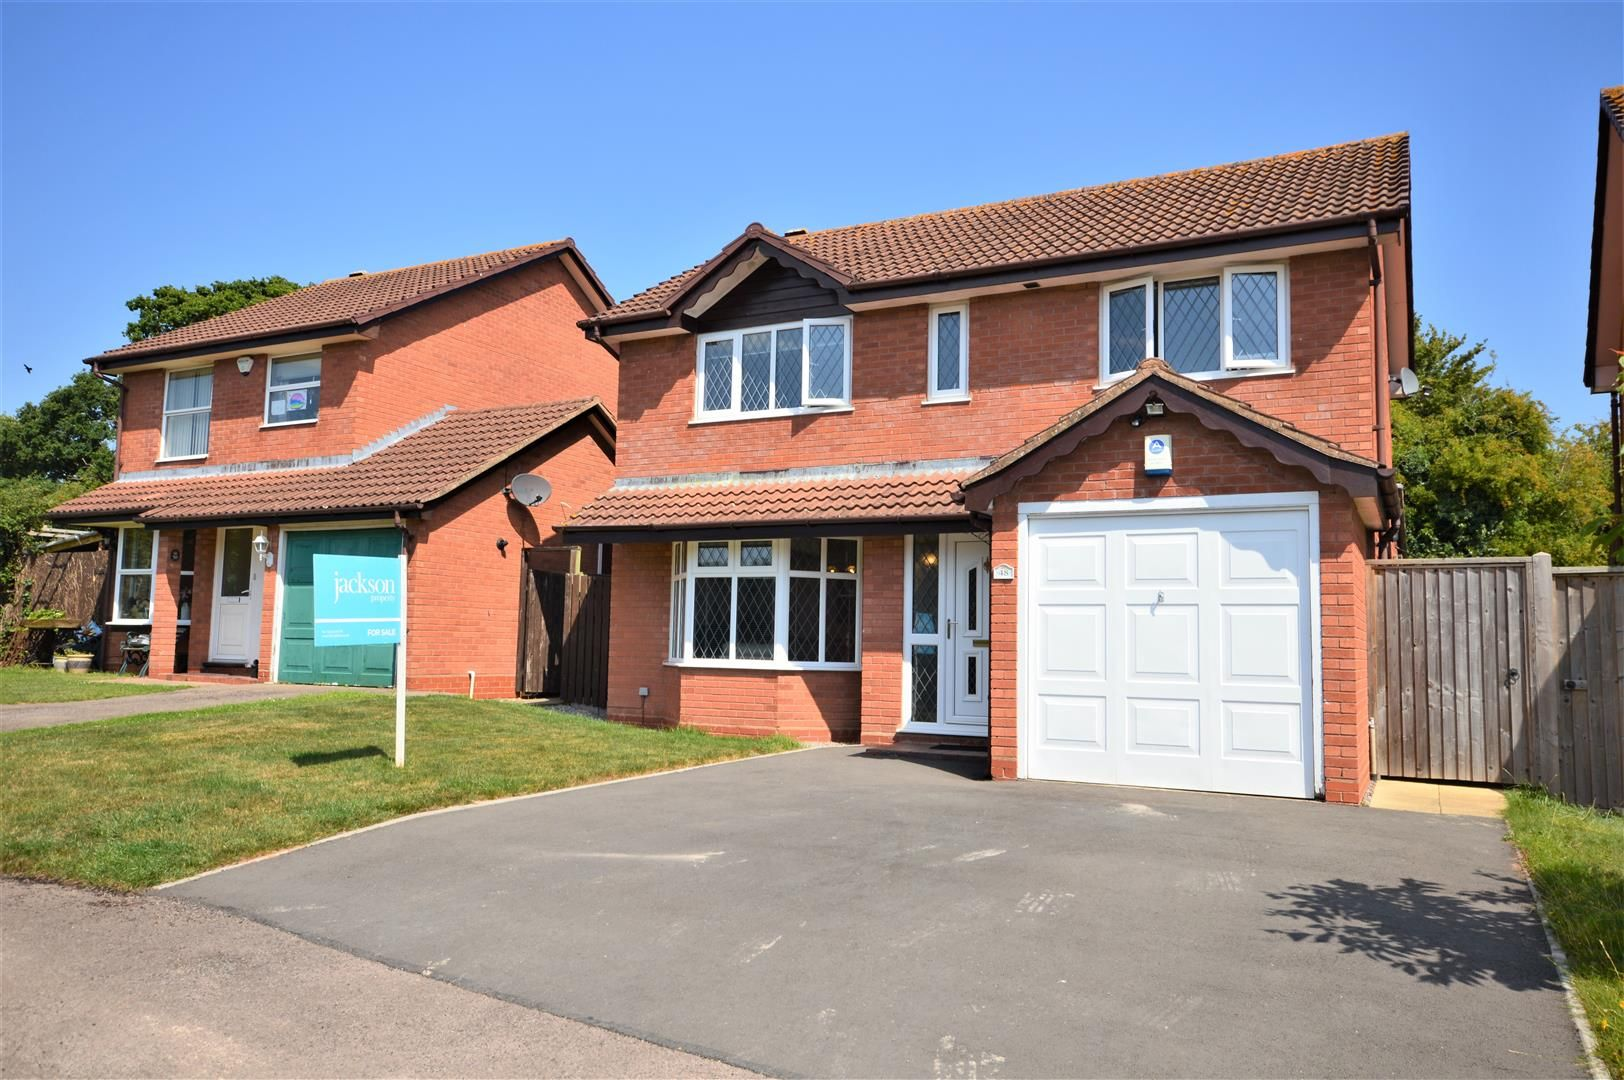 4 bed detached for sale in Hereford 1